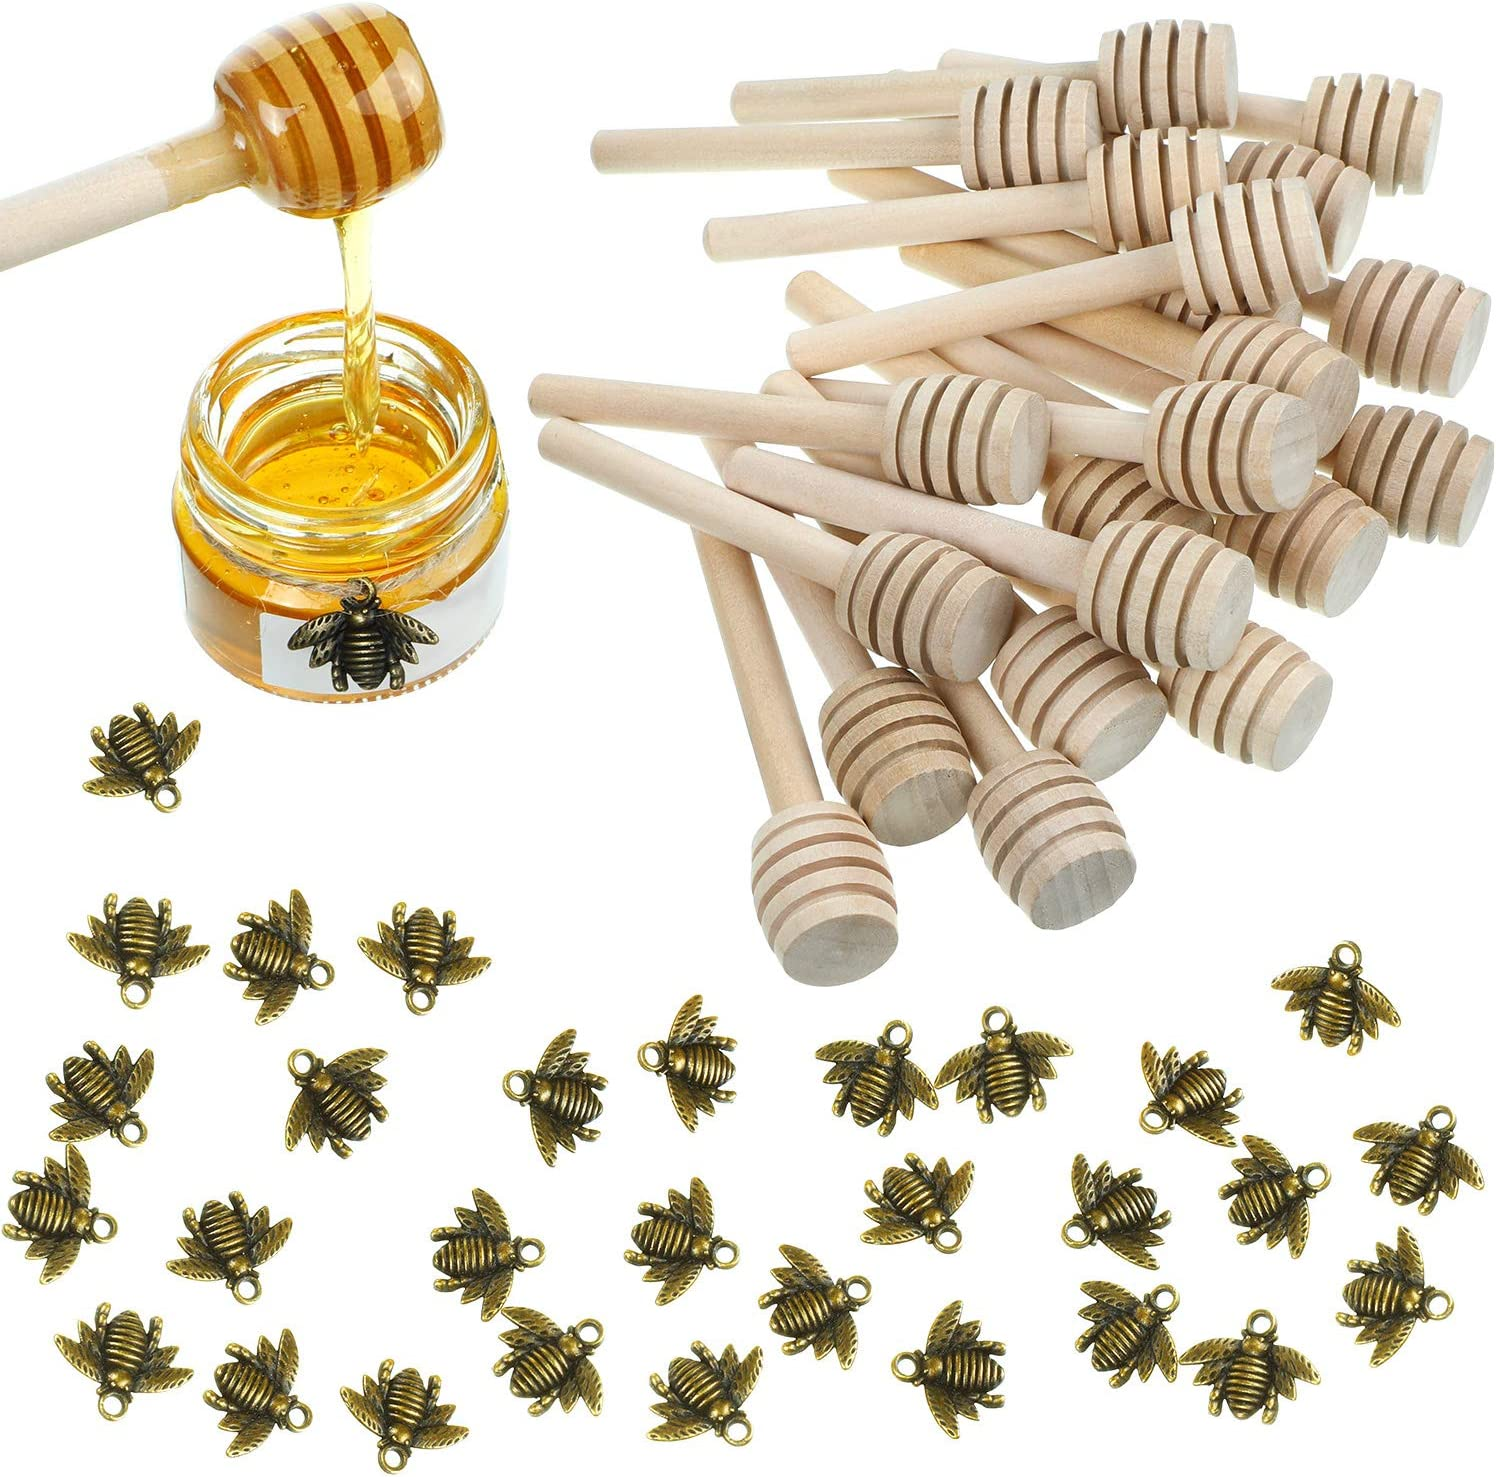 24 Pieces 3 Inch Wood Honey Dipper Sticks and 50 Pieces Honeybee Charm Pendants Set for Honey Jar Dispense Drizzle Honey DIY Craft Jewelry Making Accessory